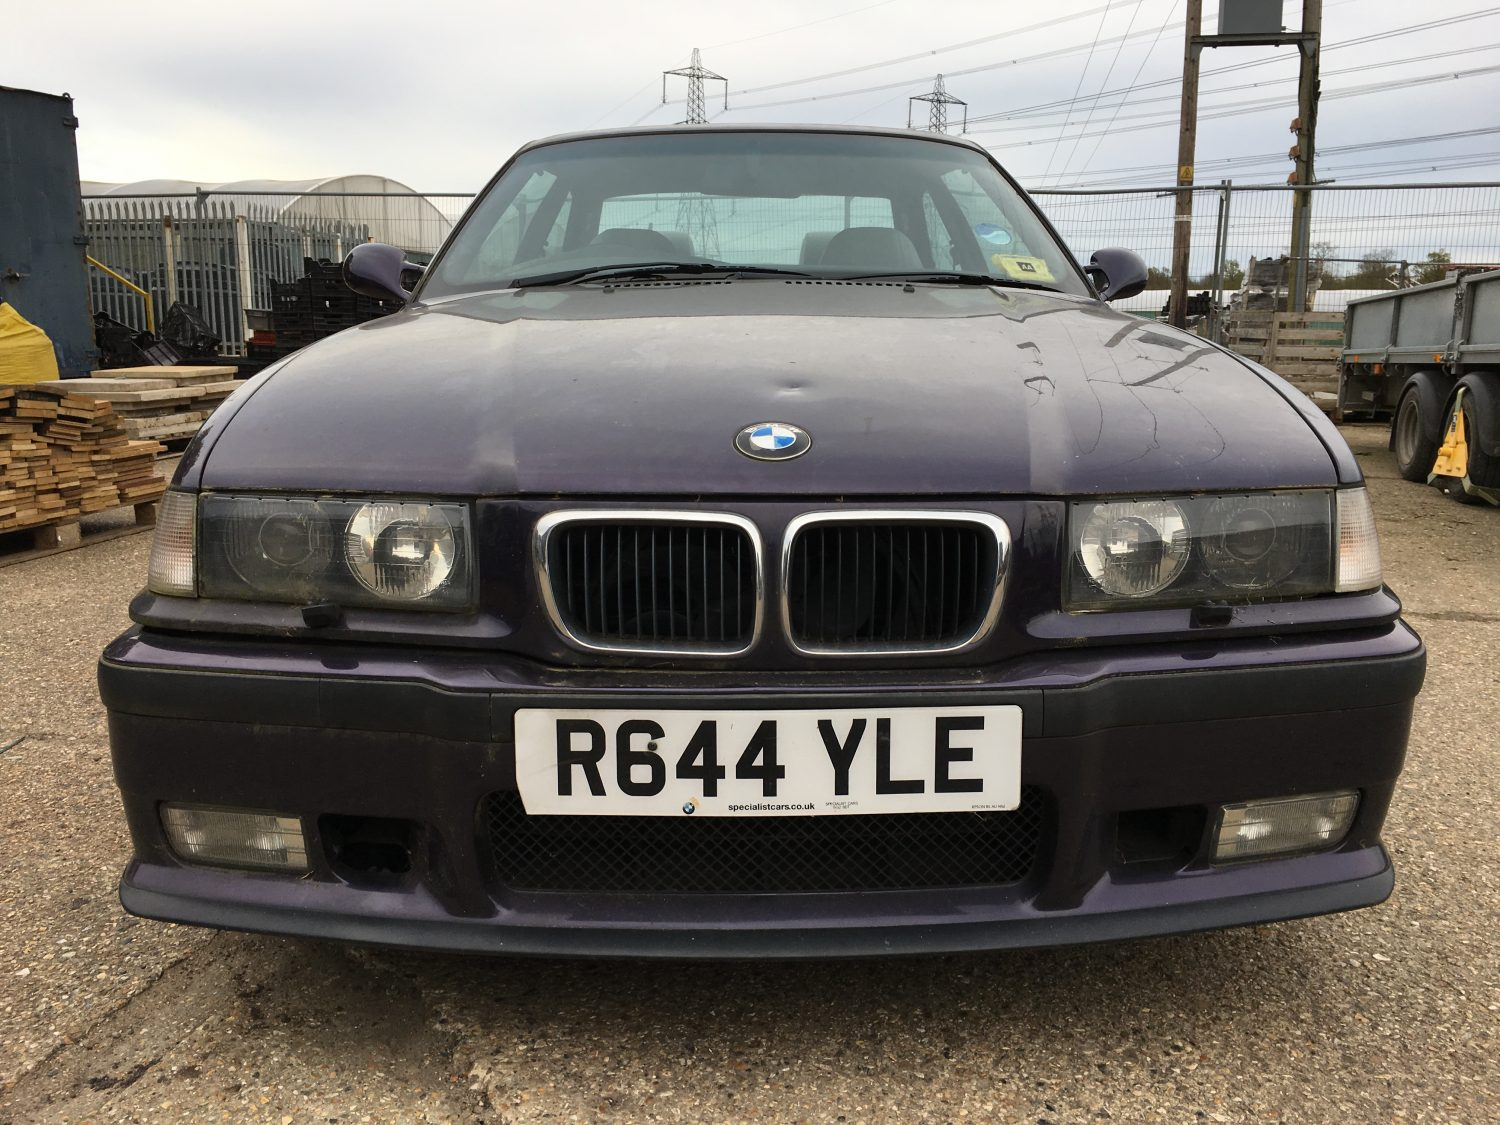 New arrival: 1998 BMW M3 Evo Coupe